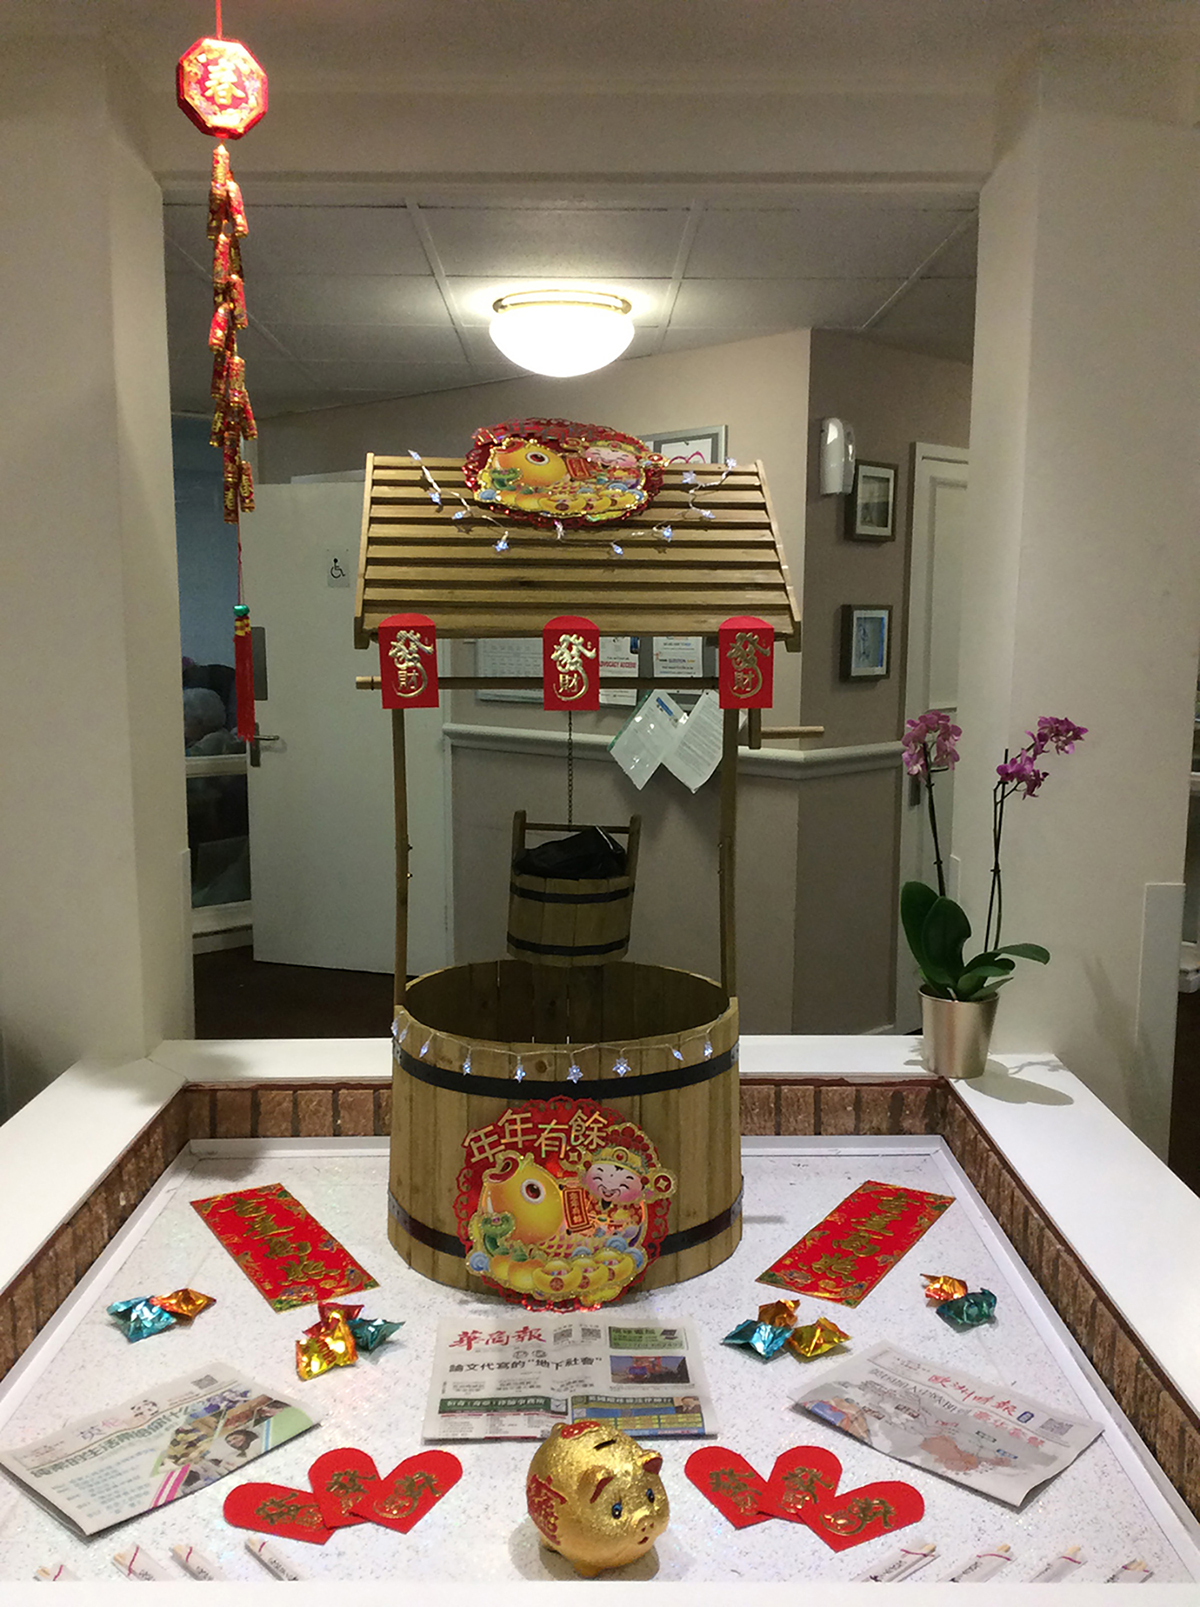 Our Chinese New Year Central Display